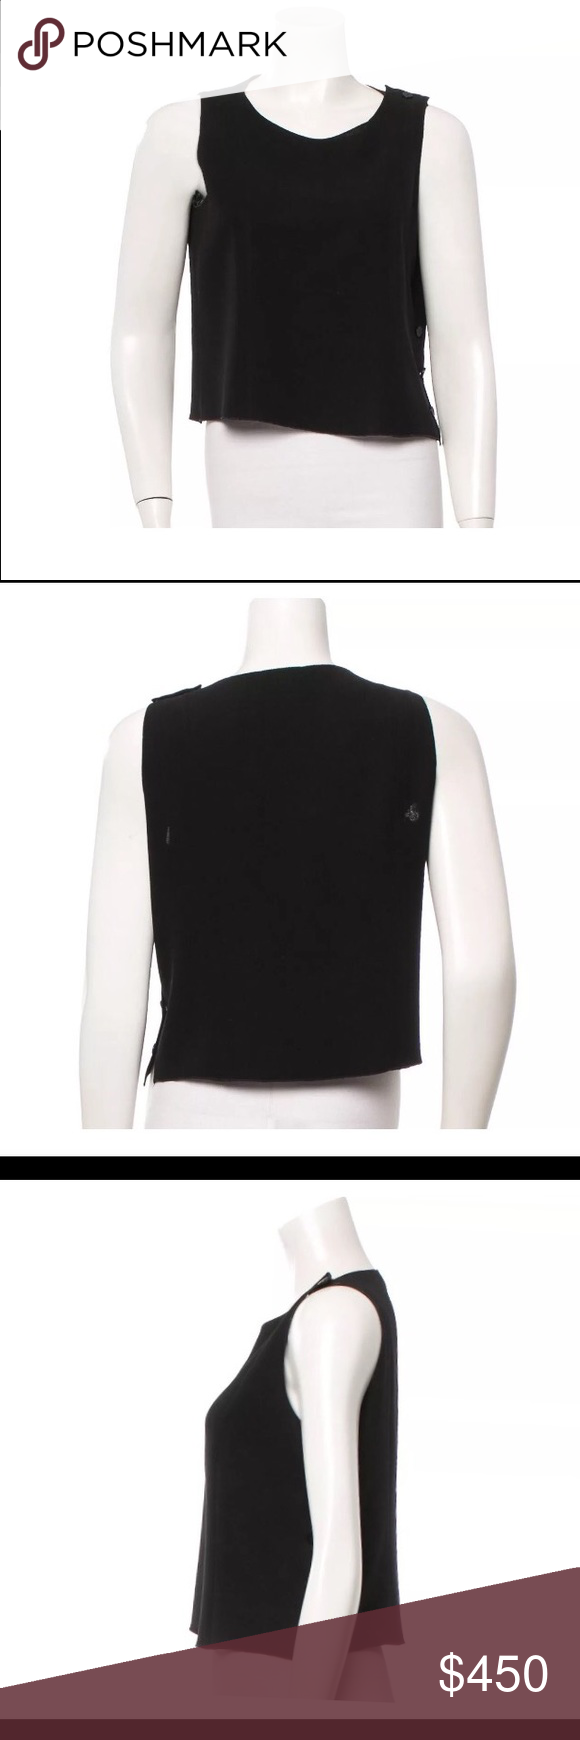 "Chanel crop top Black Chanel sleeveless woven crop top with cc logo black button closures at side and left shoulder. size L very good condition minor fading of fabric  Fabric not listed feels like cotton.  Bust 36"" Waist 36"" Length 19"" US 10 FR 42 view more photos on eBay listing CHANEL Tops Crop Tops"